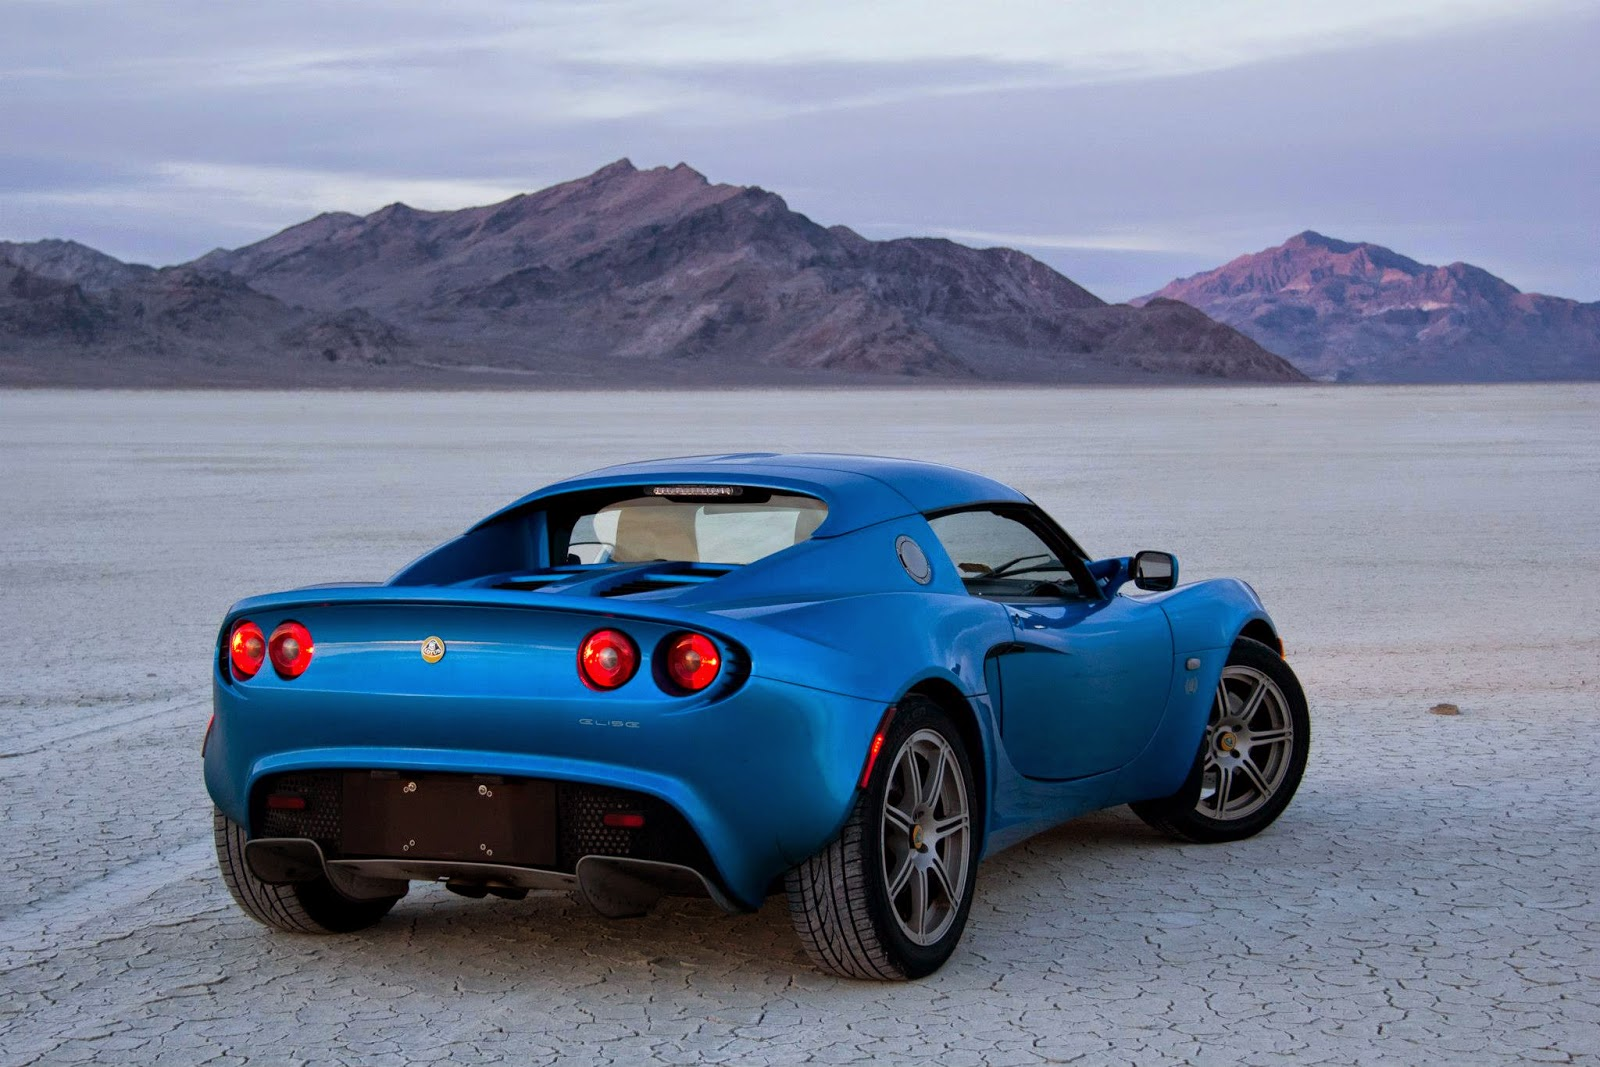 Best New Cars Under 15000 >> TheStradman - Chasing Cars: Roadtrip: San Francisco to ...